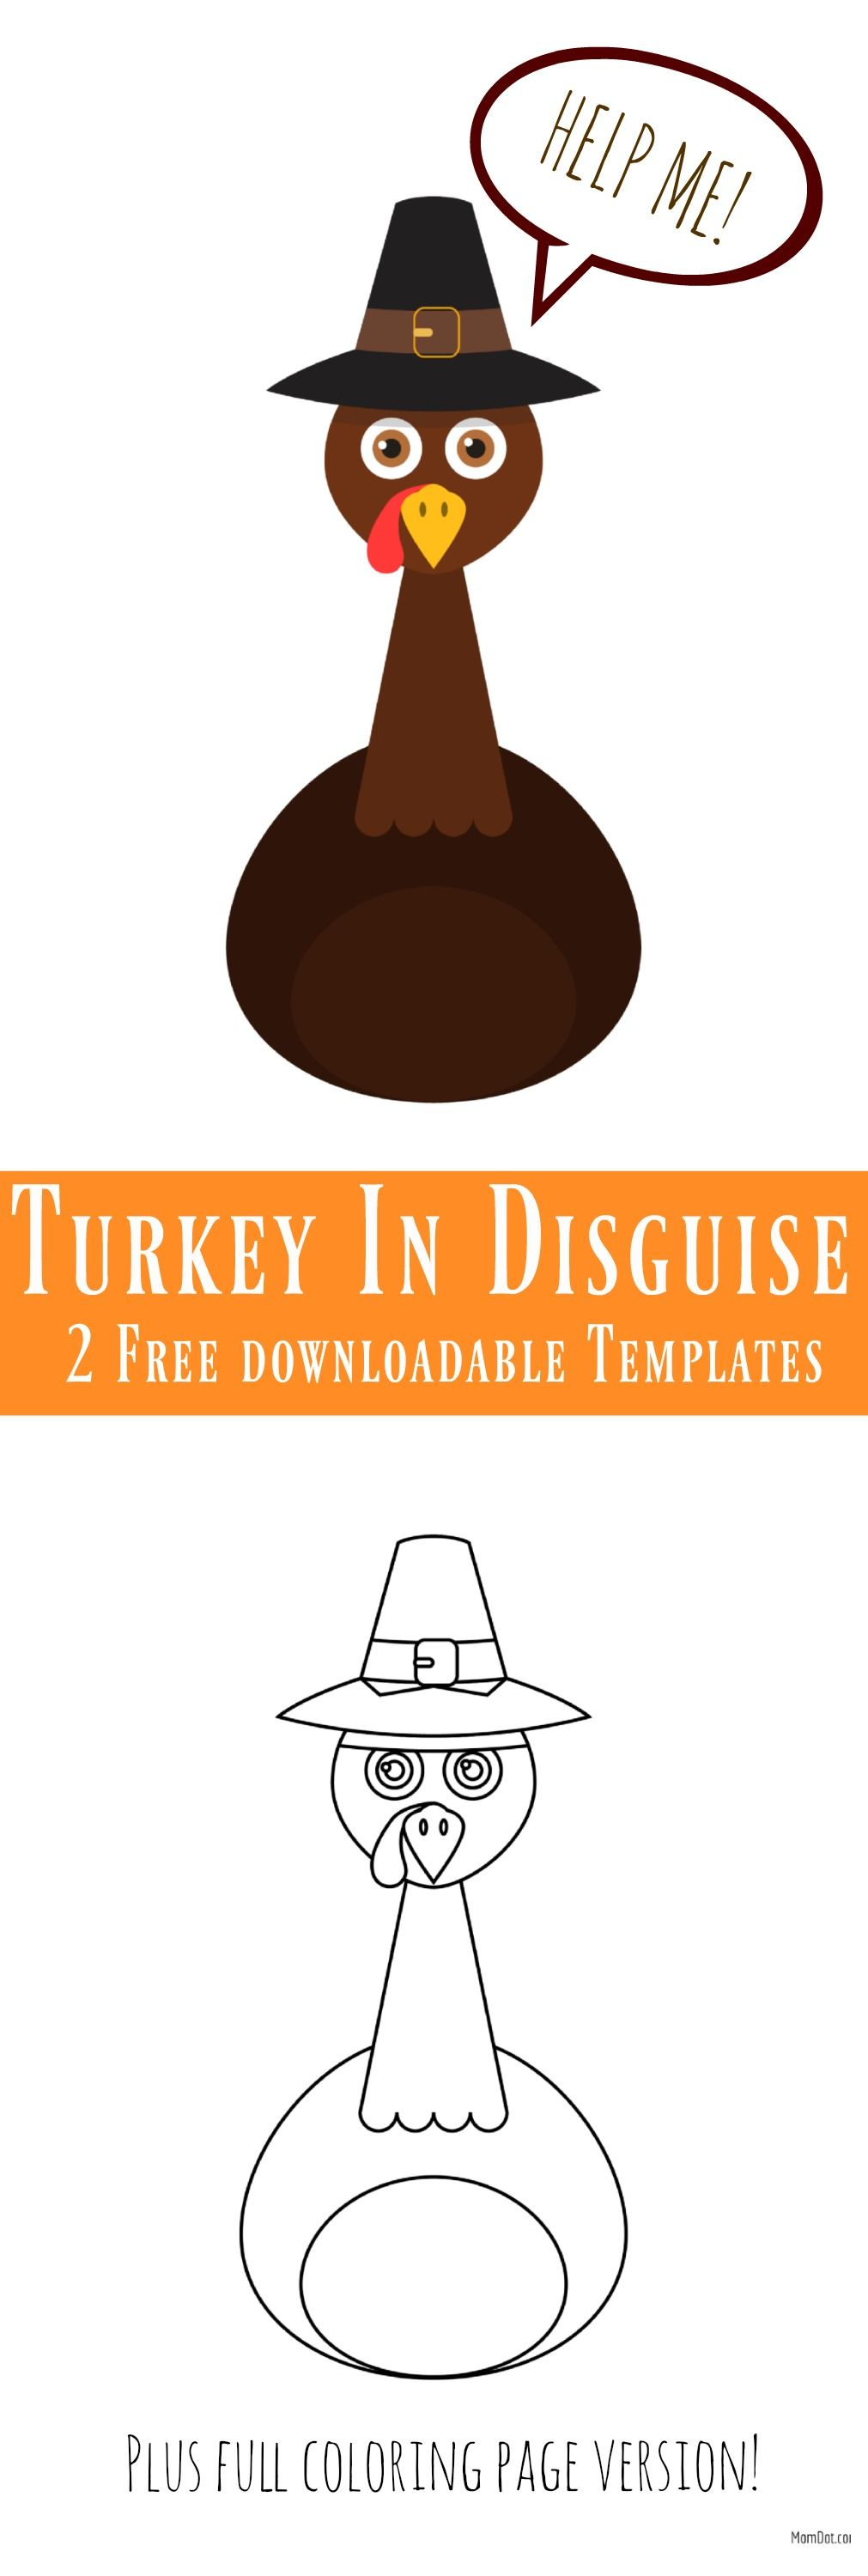 Disguise the Turkey Template , Free Downloadable Templates in color ...